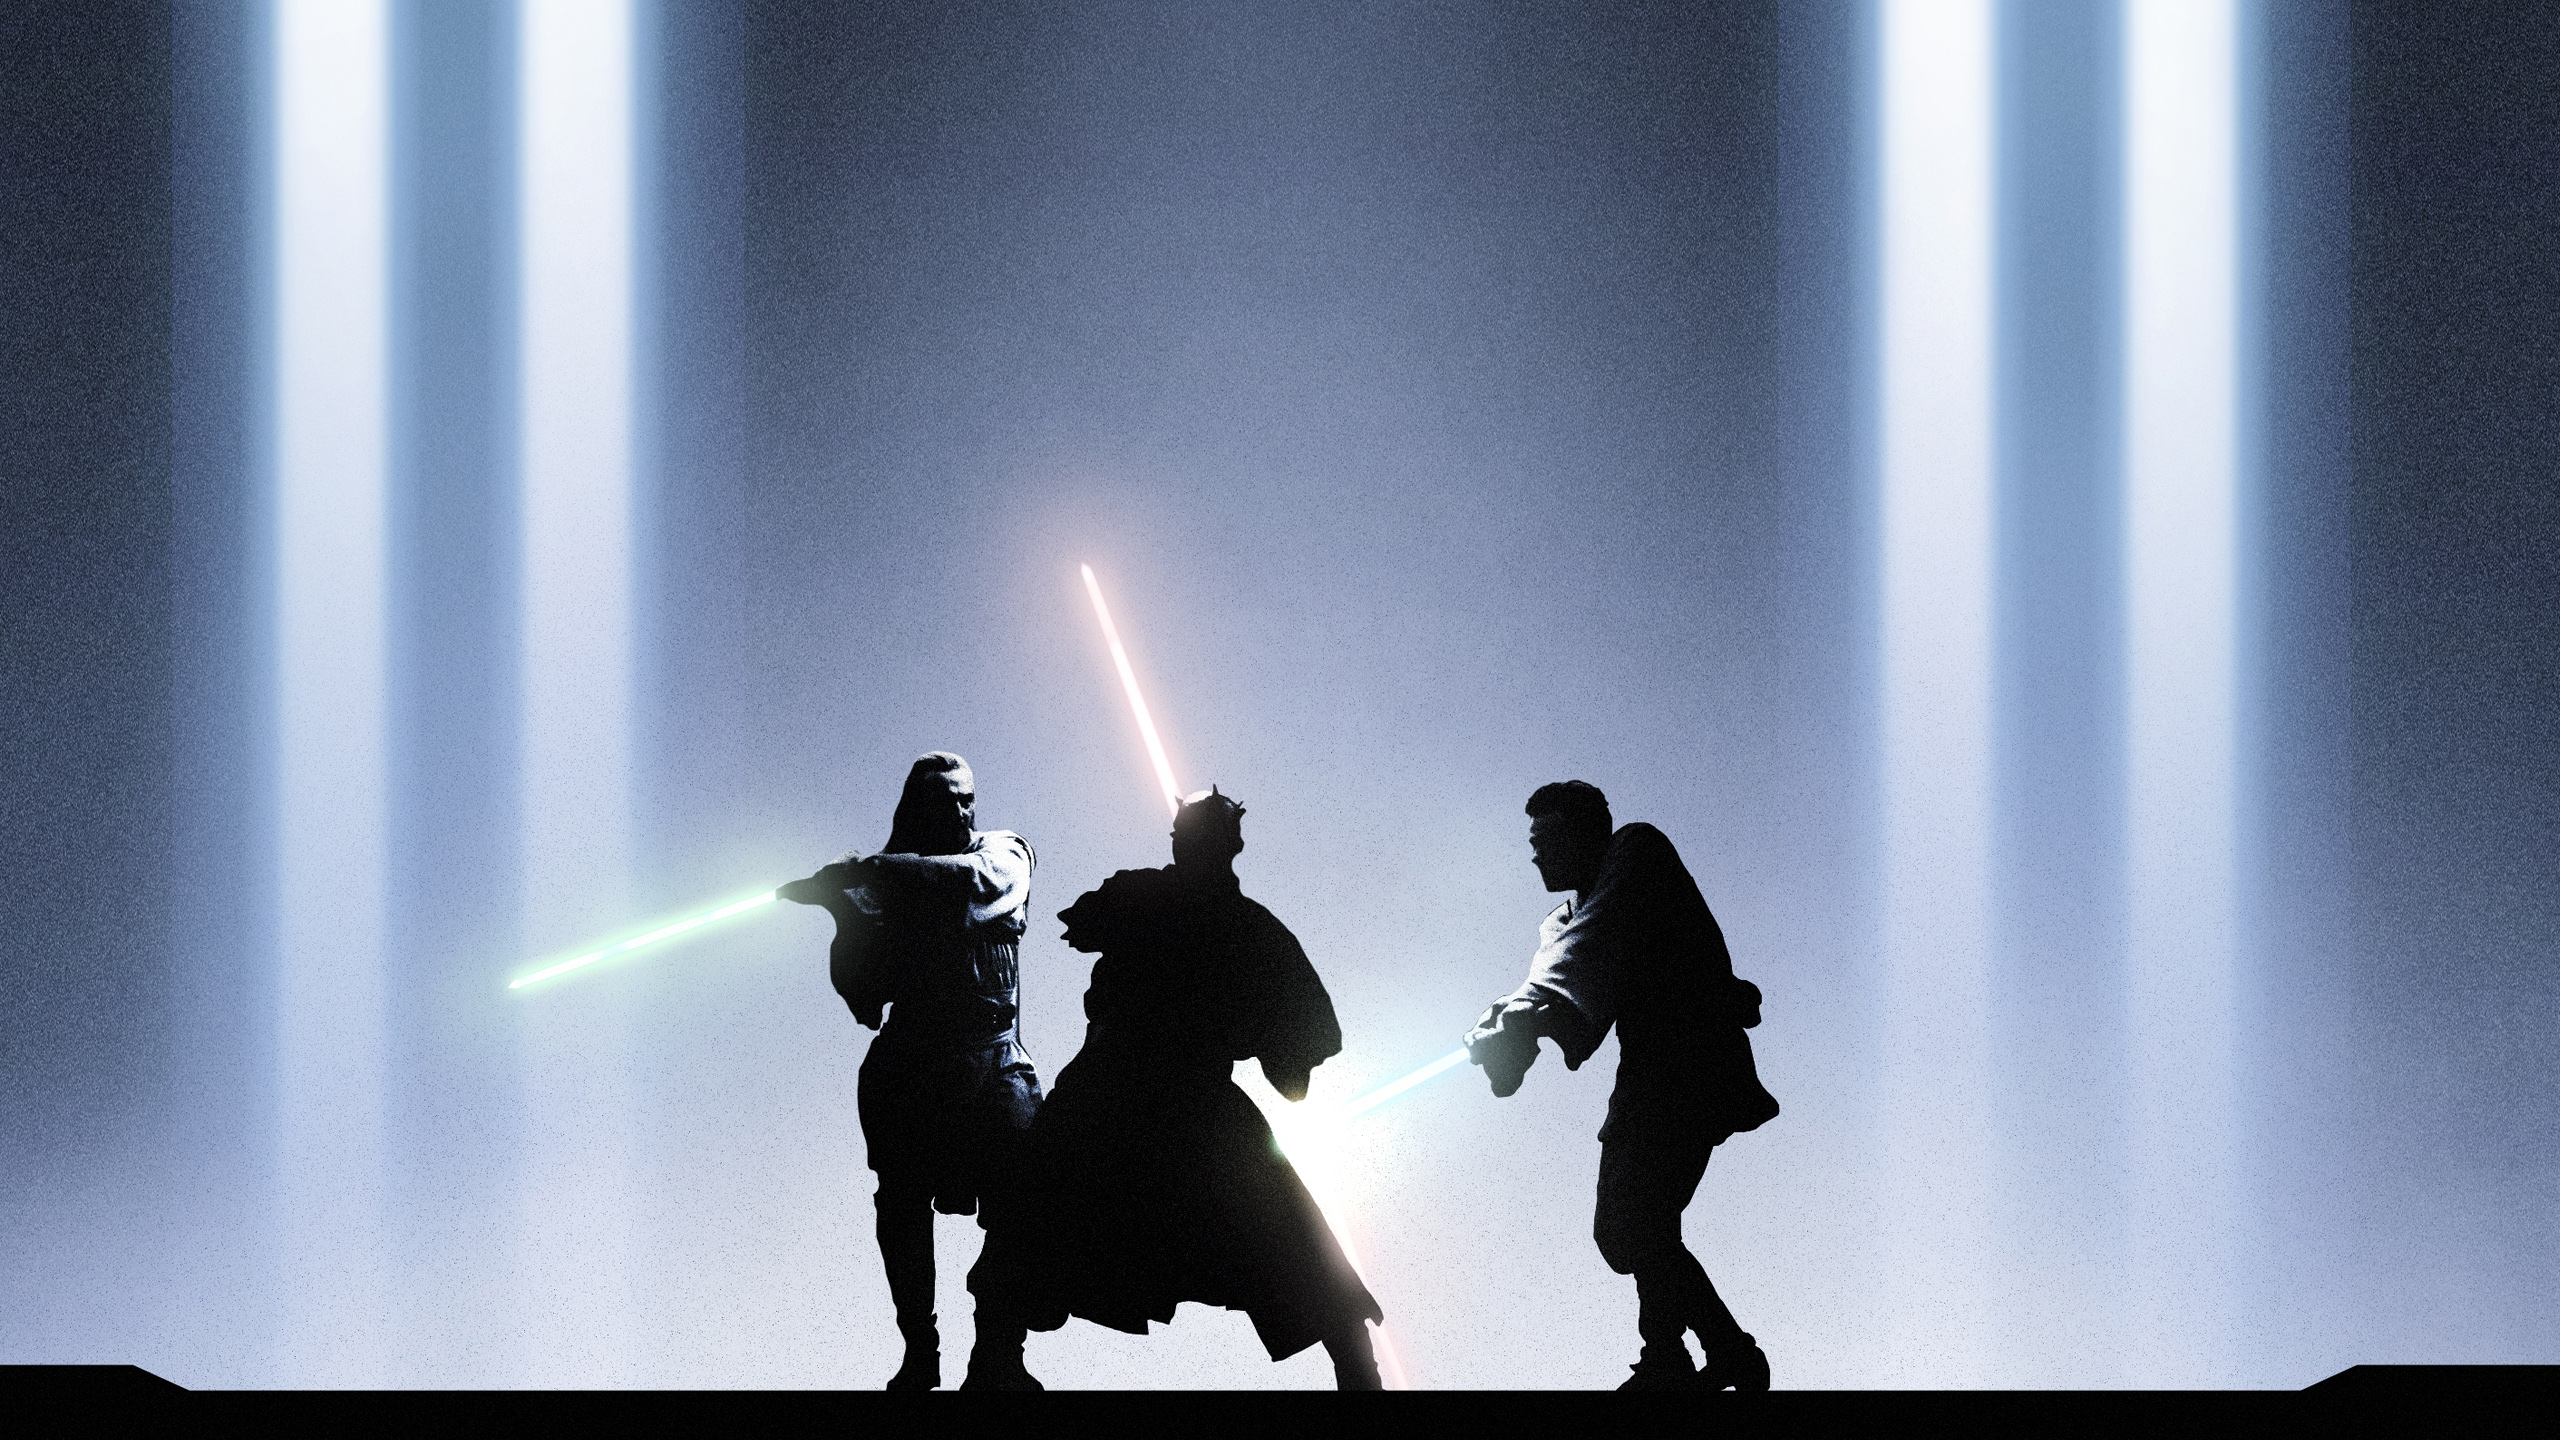 Darth 4k Wallpapers For Your Desktop Or Mobile Screen Free And